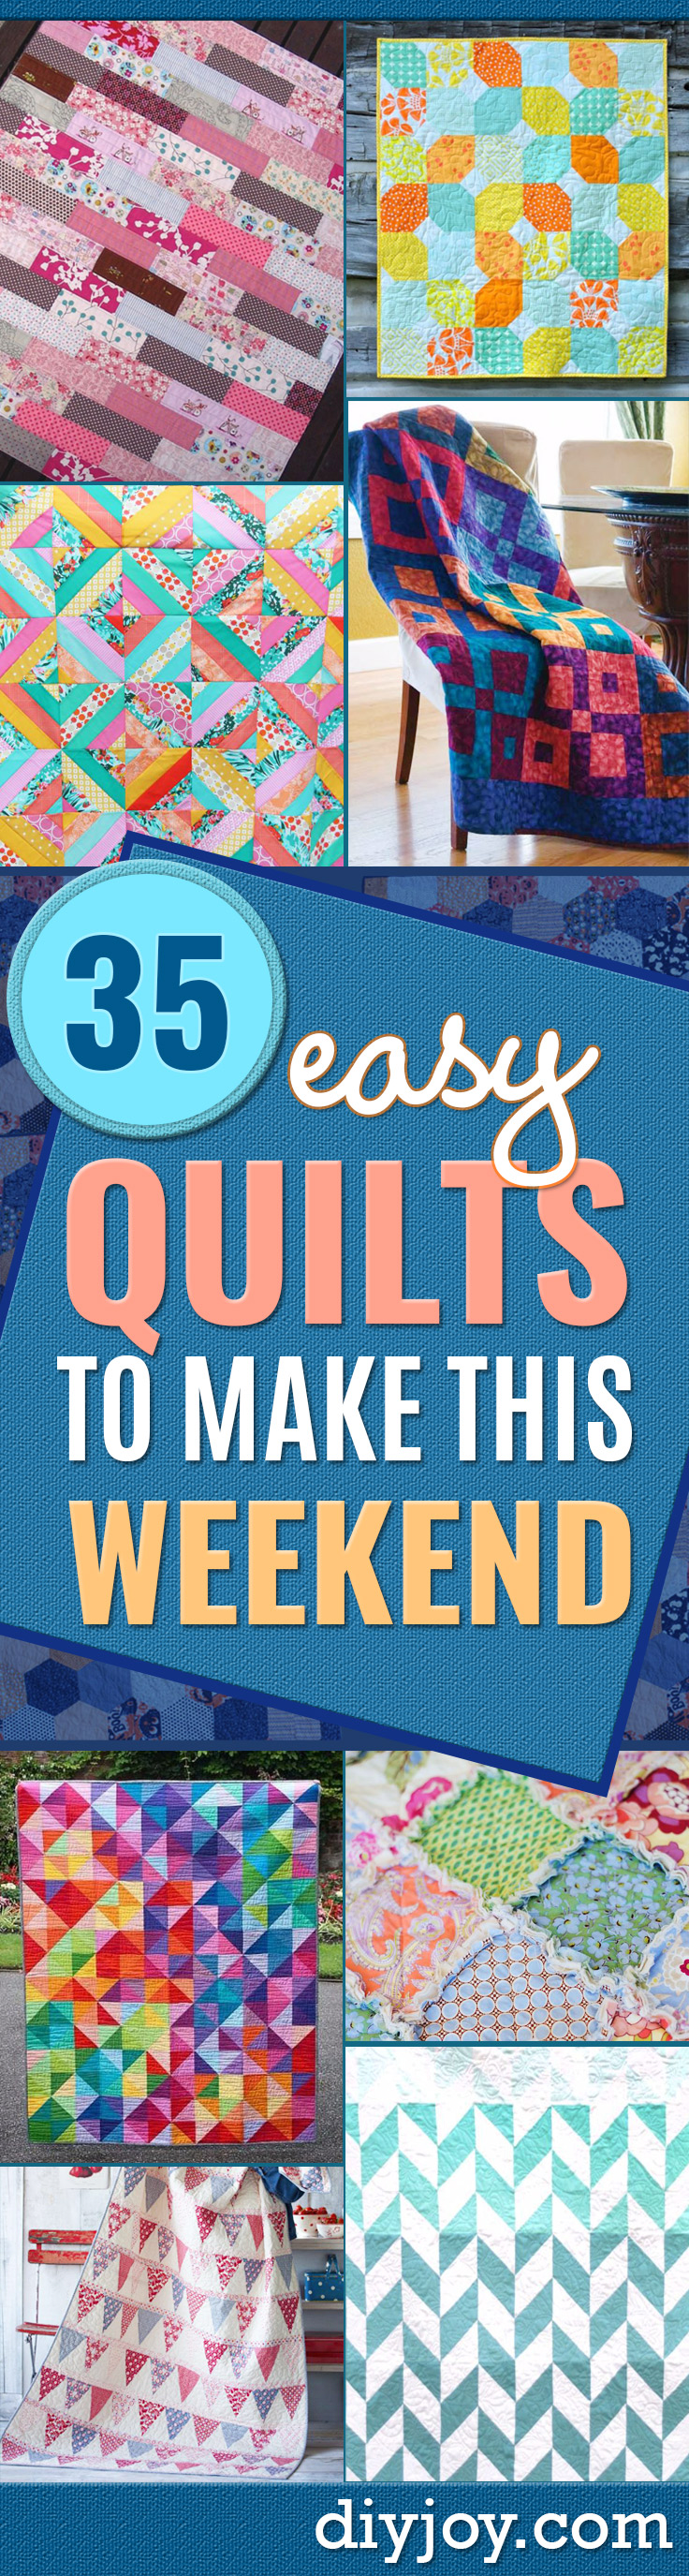 35 Easy Quilts To Make This Weekend - DIY Joy : quilts to make in a weekend - Adamdwight.com